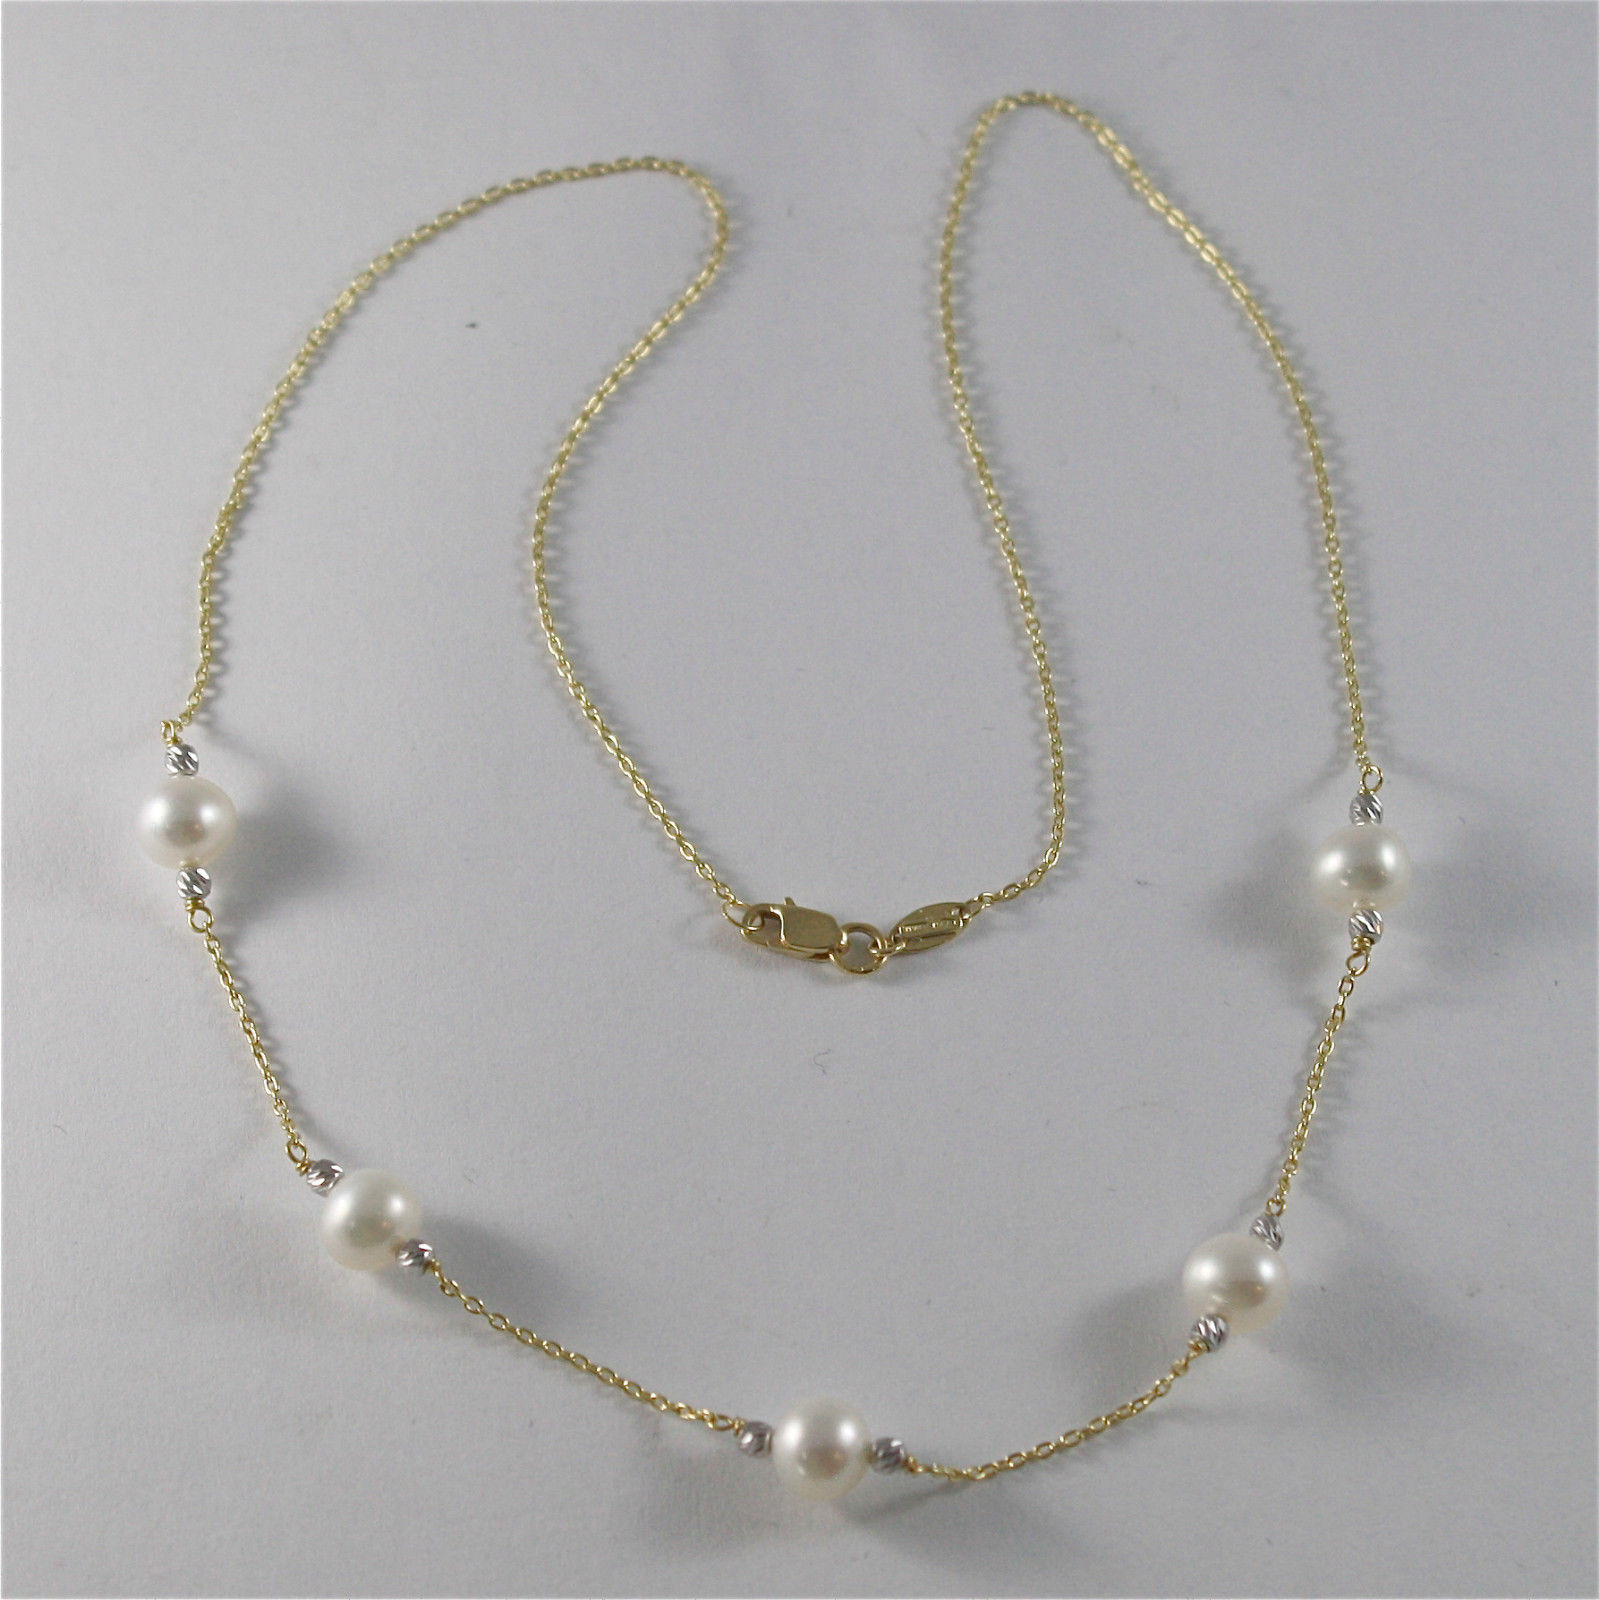 18K YELLO GOLD NECKLACE WITH ROUND WHITE 6 7 mm FRESHWATER PEARLS MADE IN ITALY